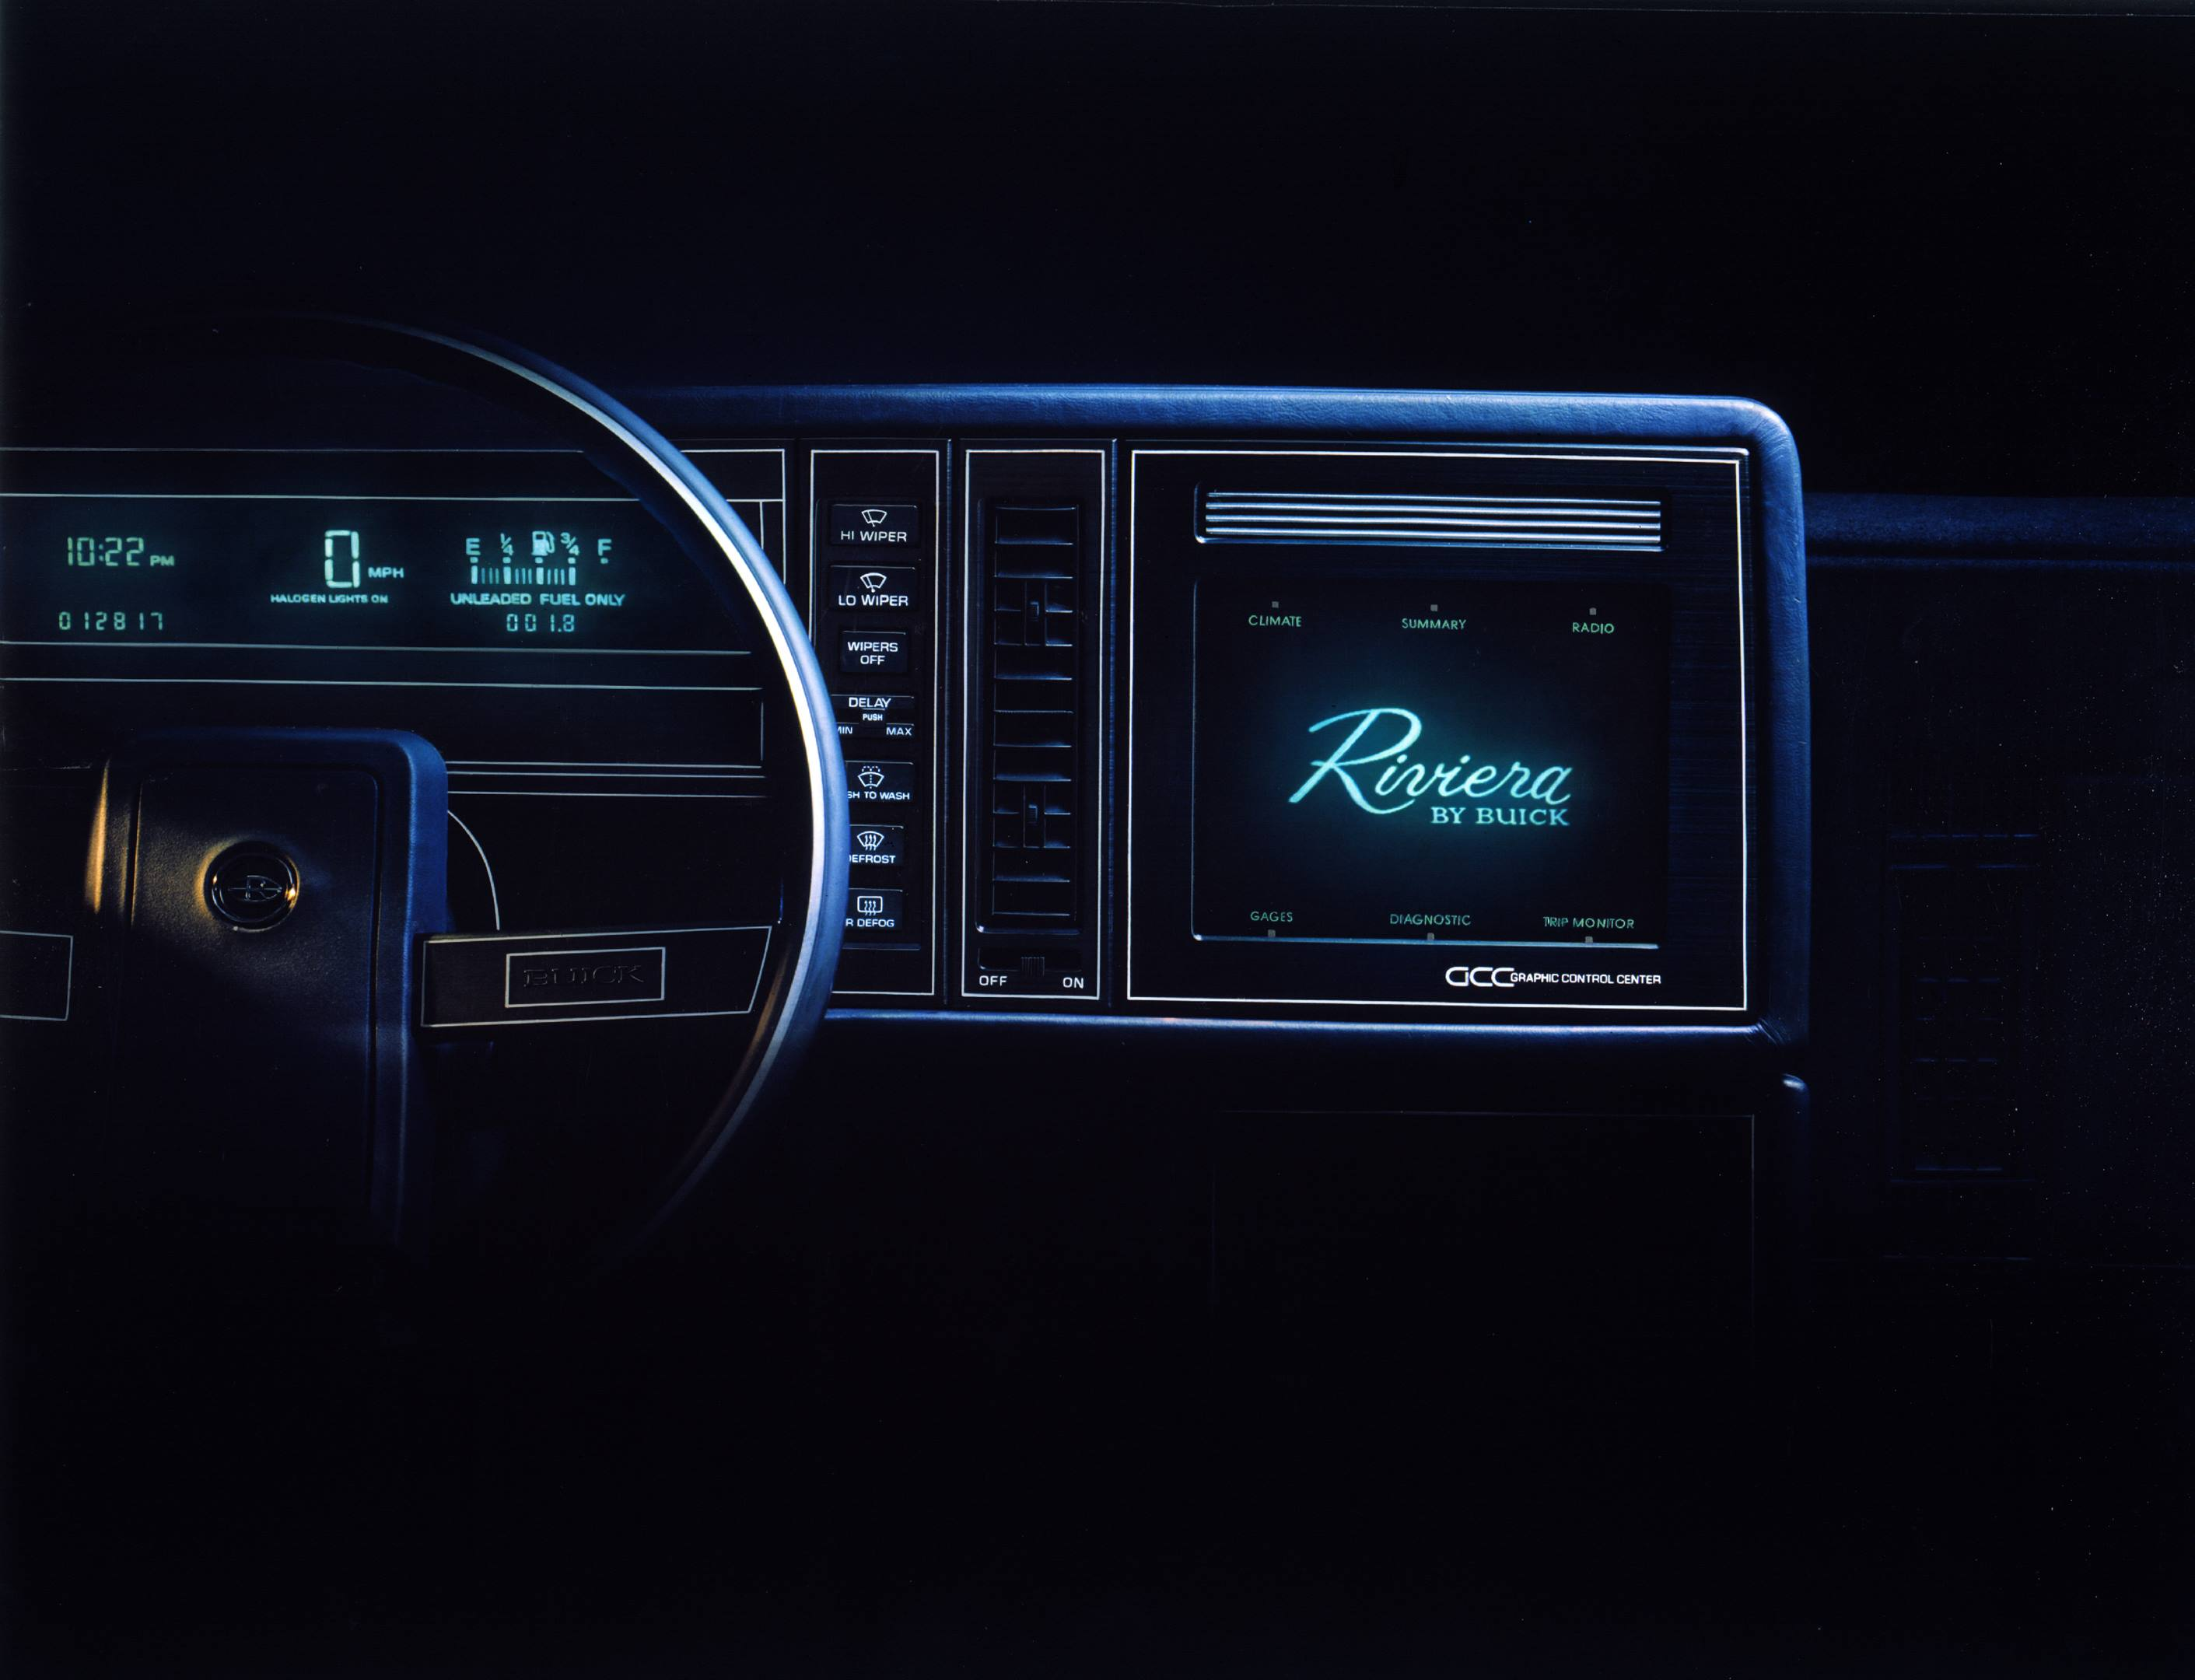 Infotainment systems? That's so 1986